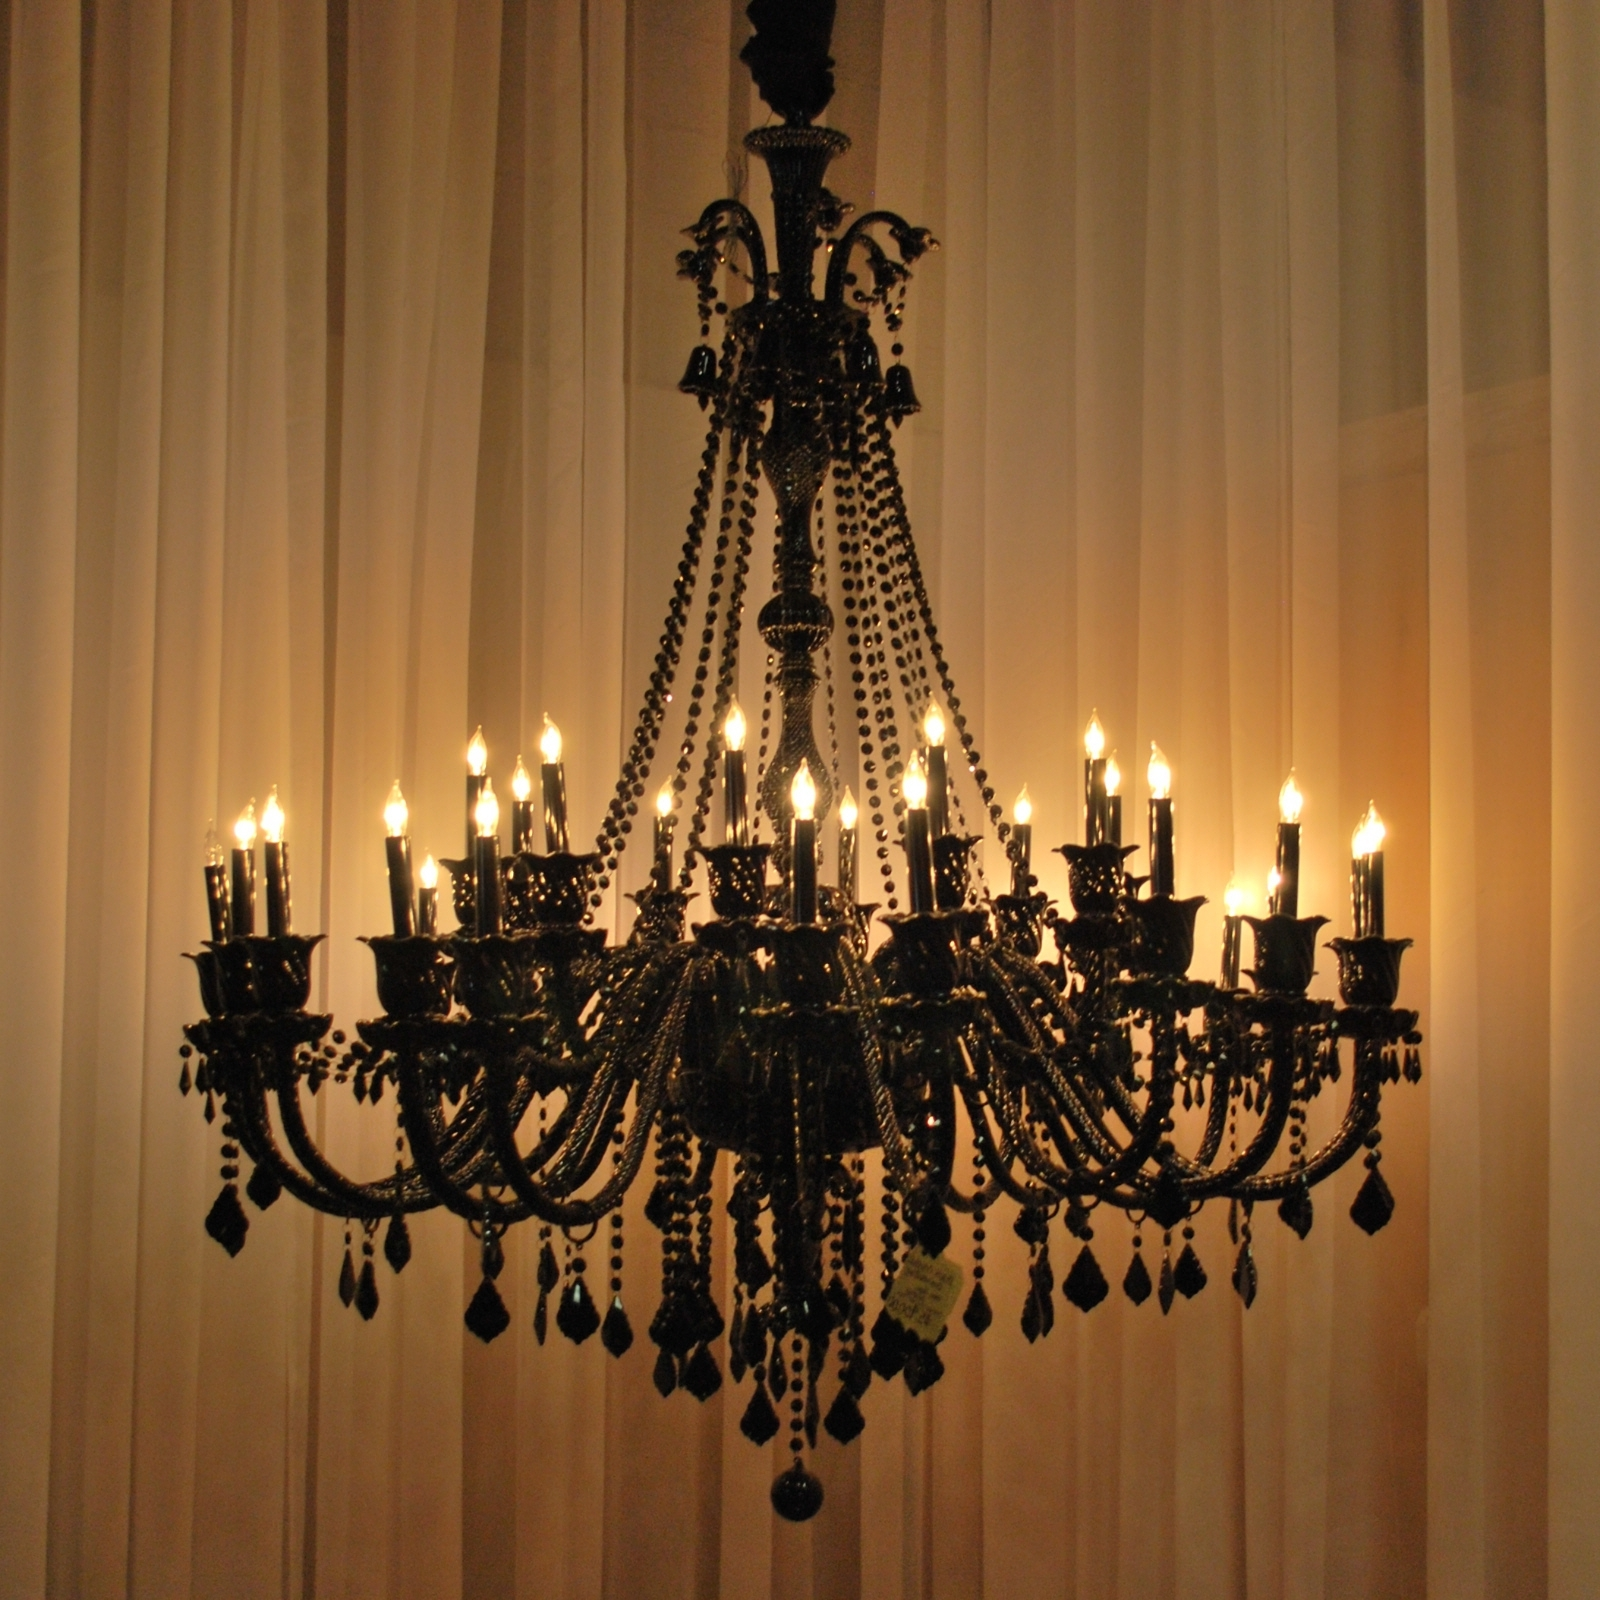 Chandeliers Vintage For Well Known Gothic Style Chandeliers Vintage Spanish Iron And Wood Eight Arm (View 11 of 20)